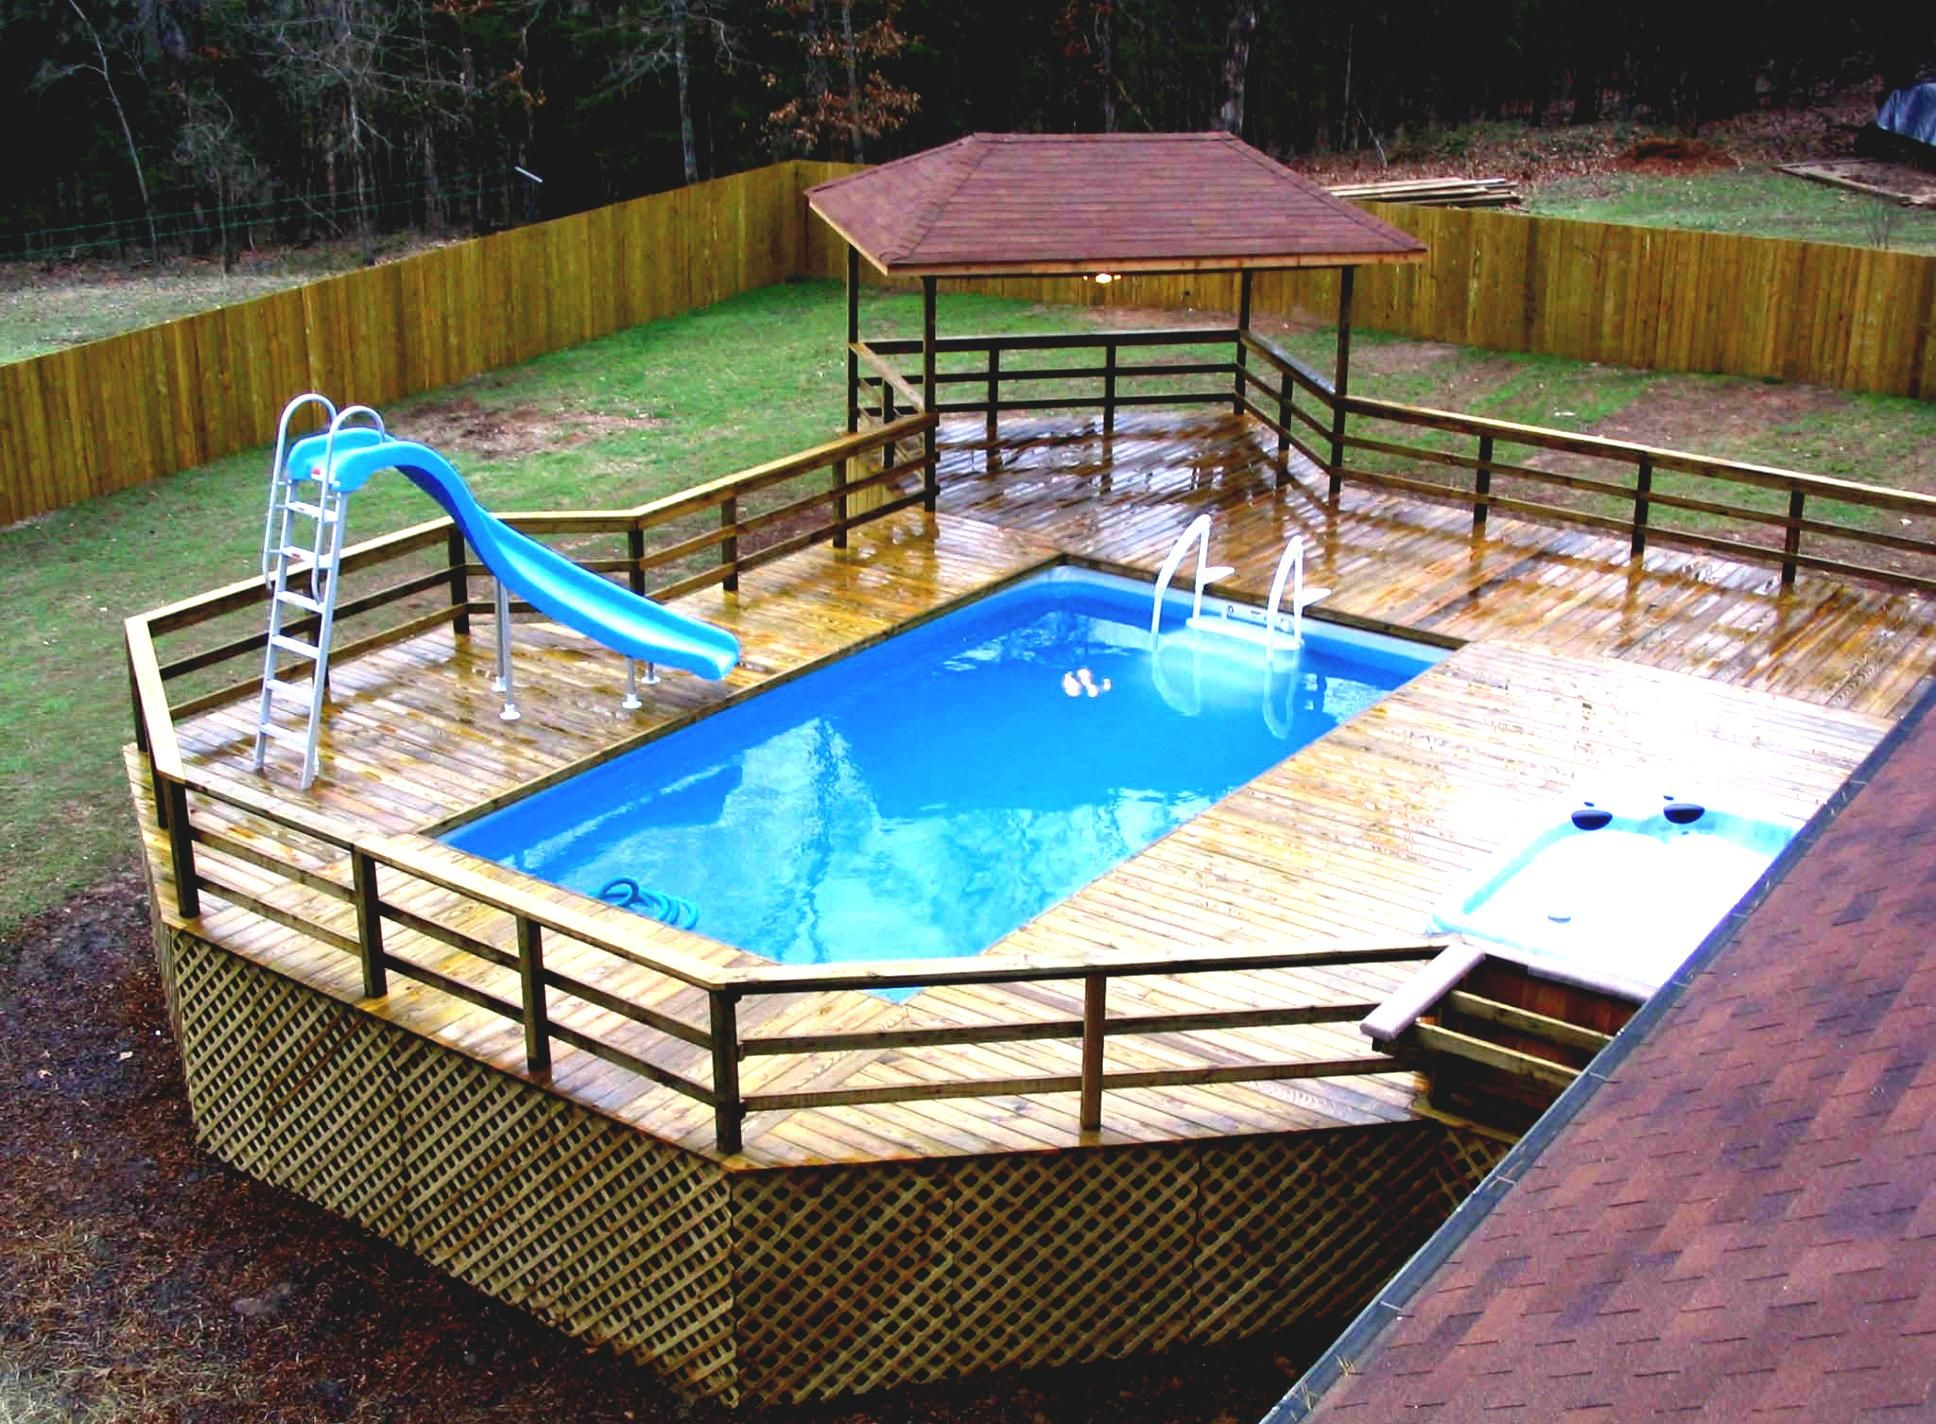 Backyard ideas with above ground pools - Intex Above Ground Pool Landscaping Ideas Pdf Backyard With